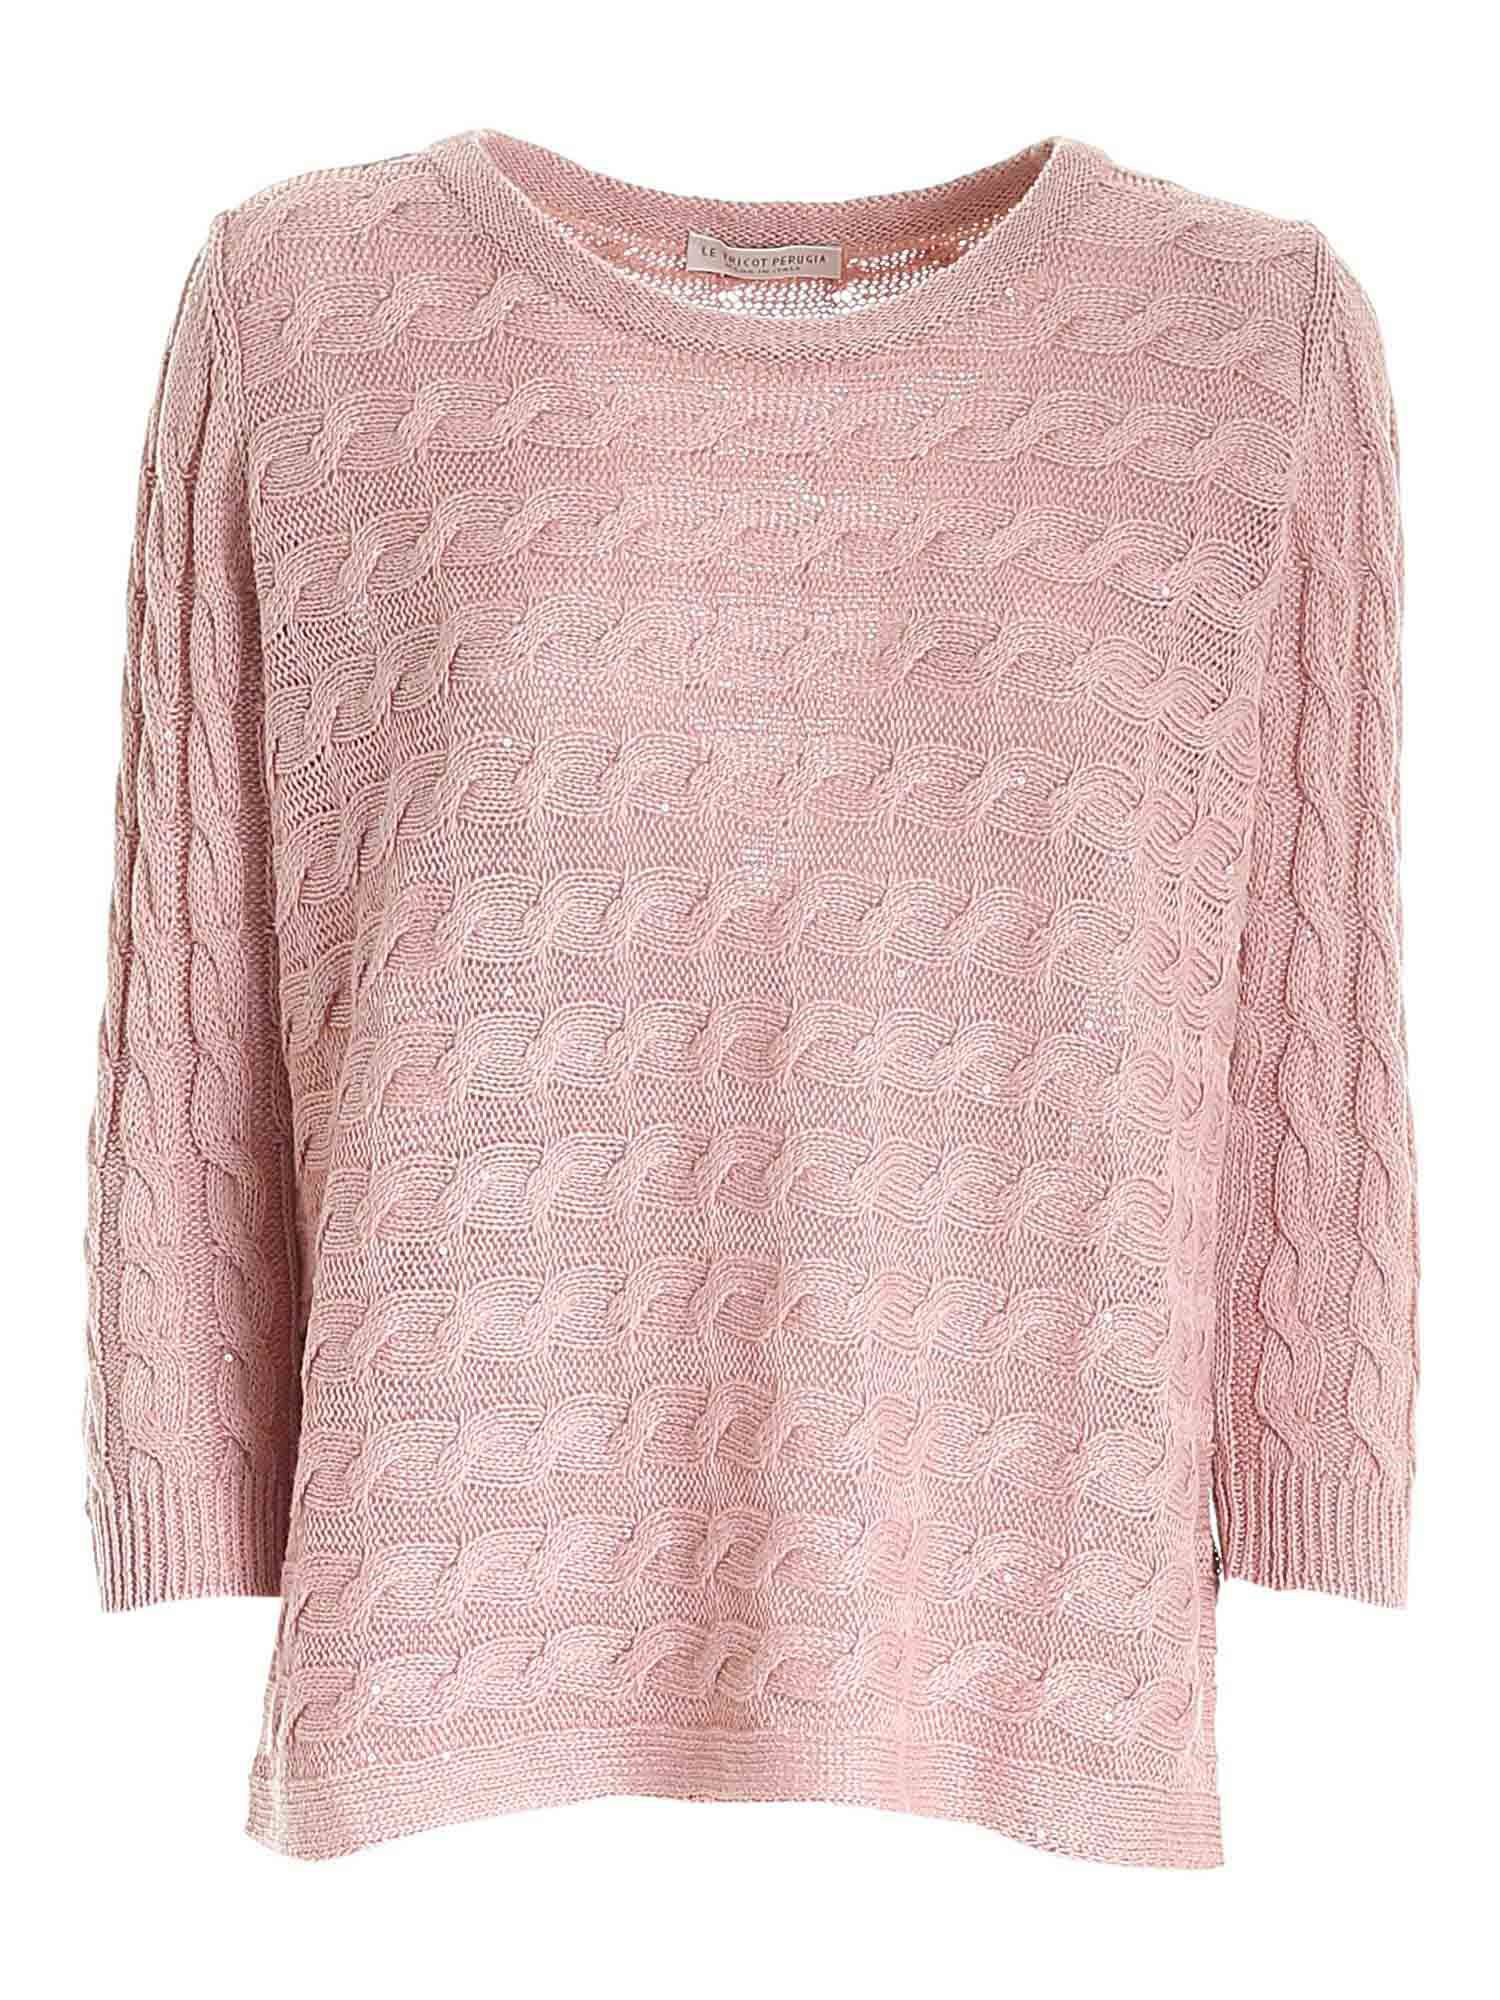 Le Tricot Perugia MICRO SEQUINS SWEATER IN PINK